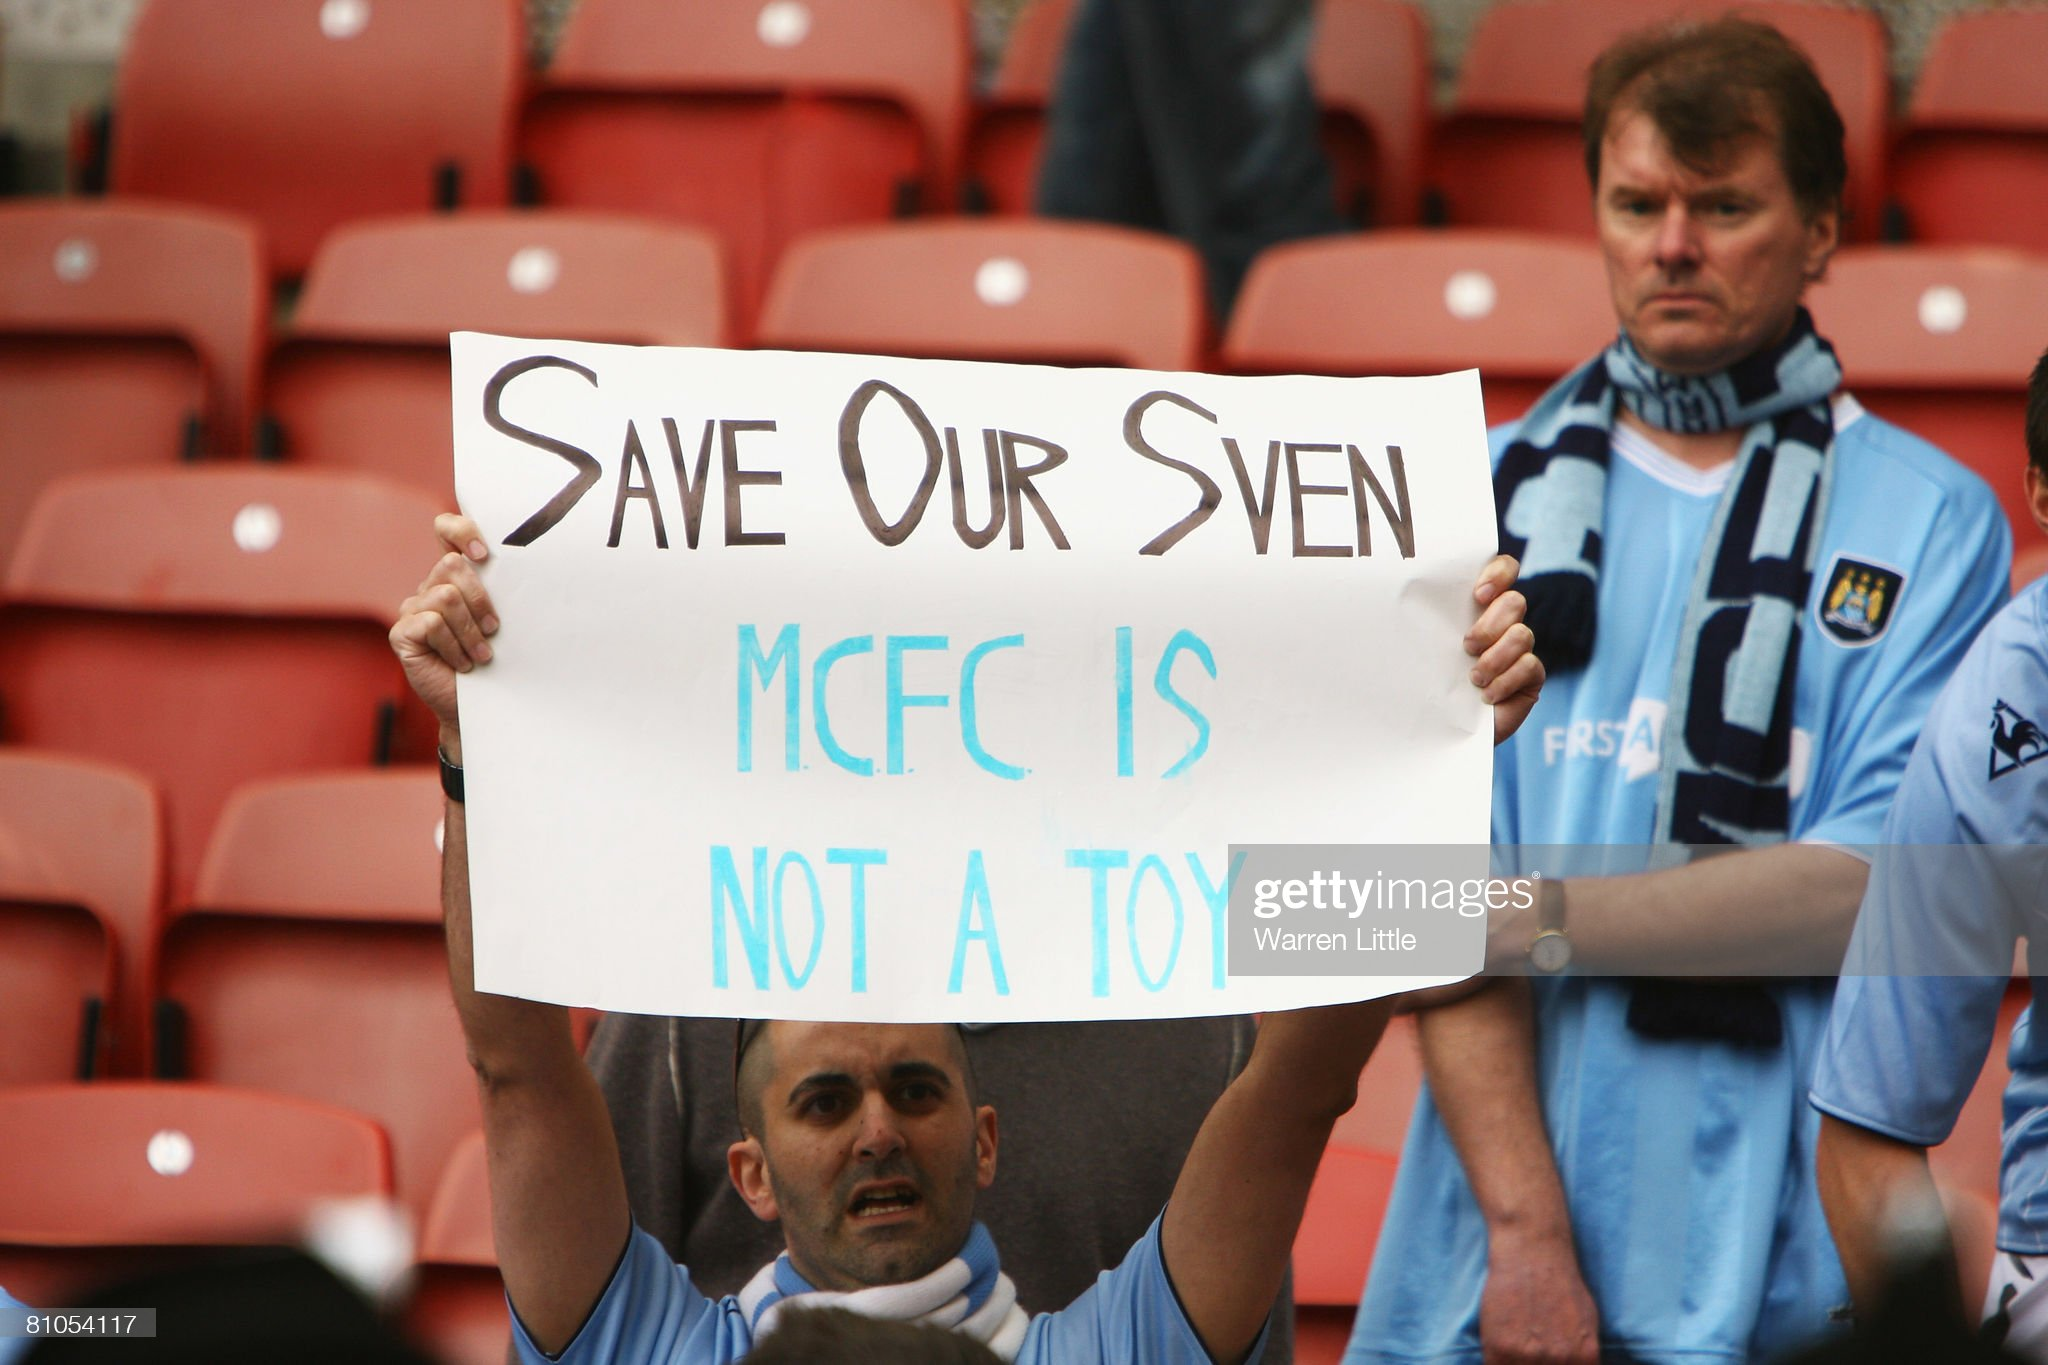 https://media.gettyimages.com/photos/fans-display-encouragement-for-their-manchester-city-manager-sven-picture-id81054117?s=2048x2048